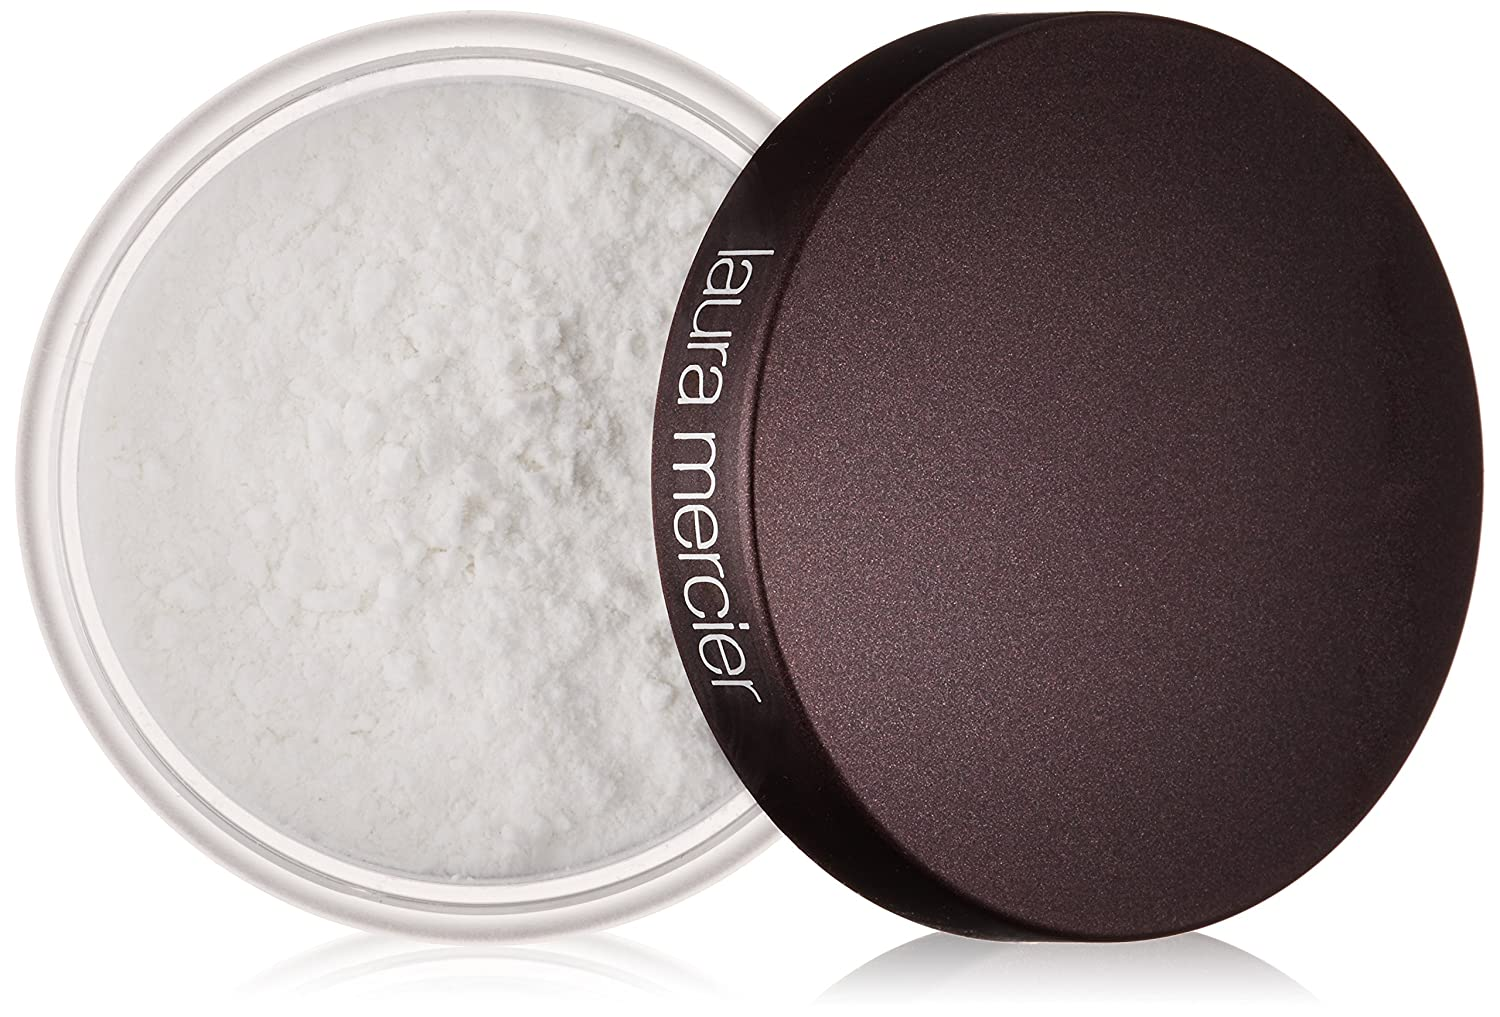 Laura Mercier Secret Brightening Powder - 4g CLM10301